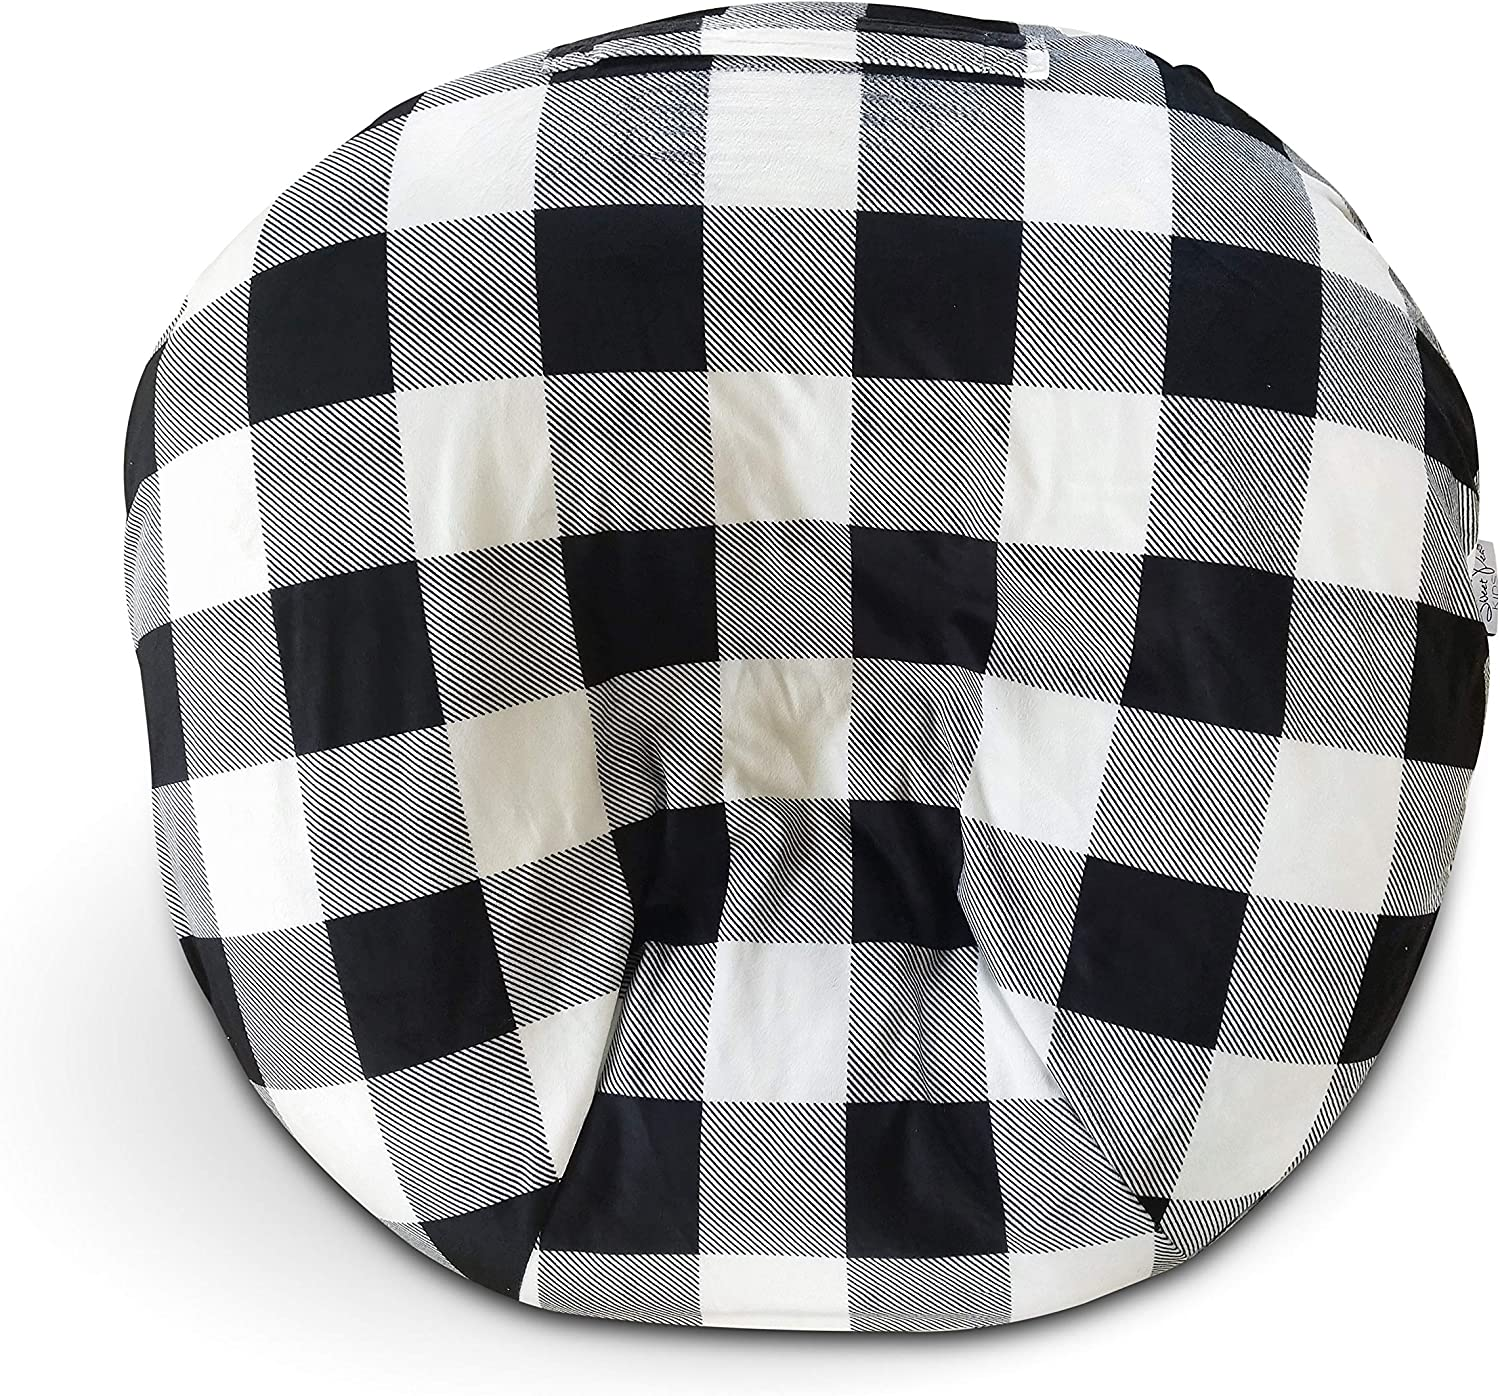 Removable /& Washable Fits Boppy Infant Lounger Pillow not Included Minky Black White Buffalo Plaid Newborn Lounger Cover Minky Farmhouse Look Premium Soft Quality Great Baby Shower Gift